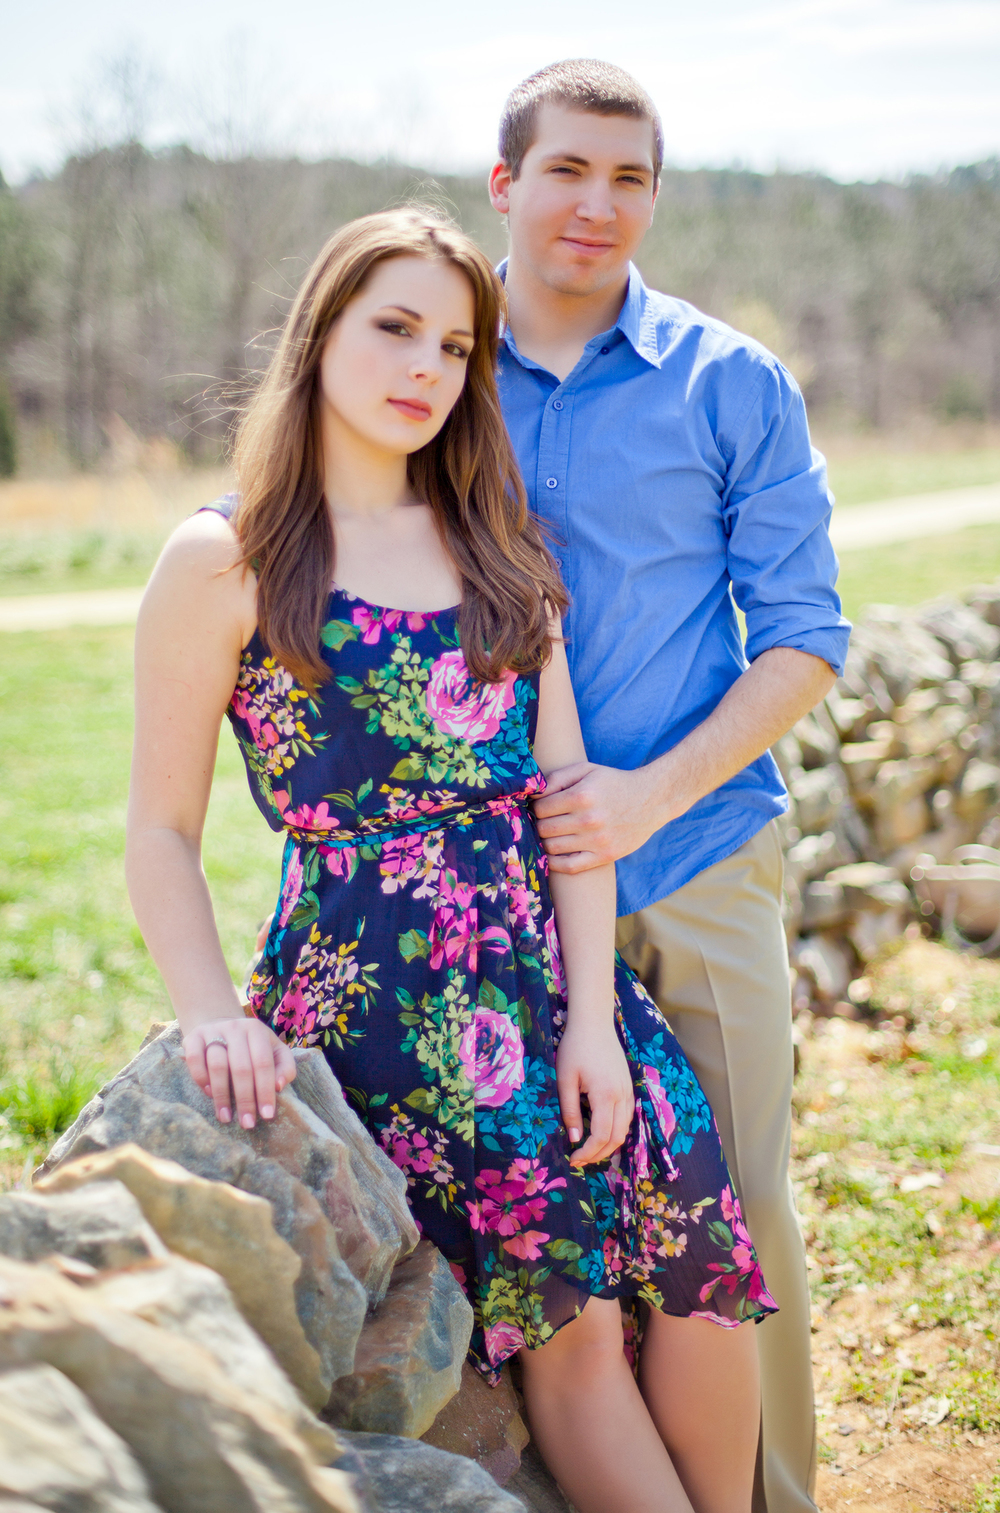 Vibrant Engagement Photography in Wake Forest, NC